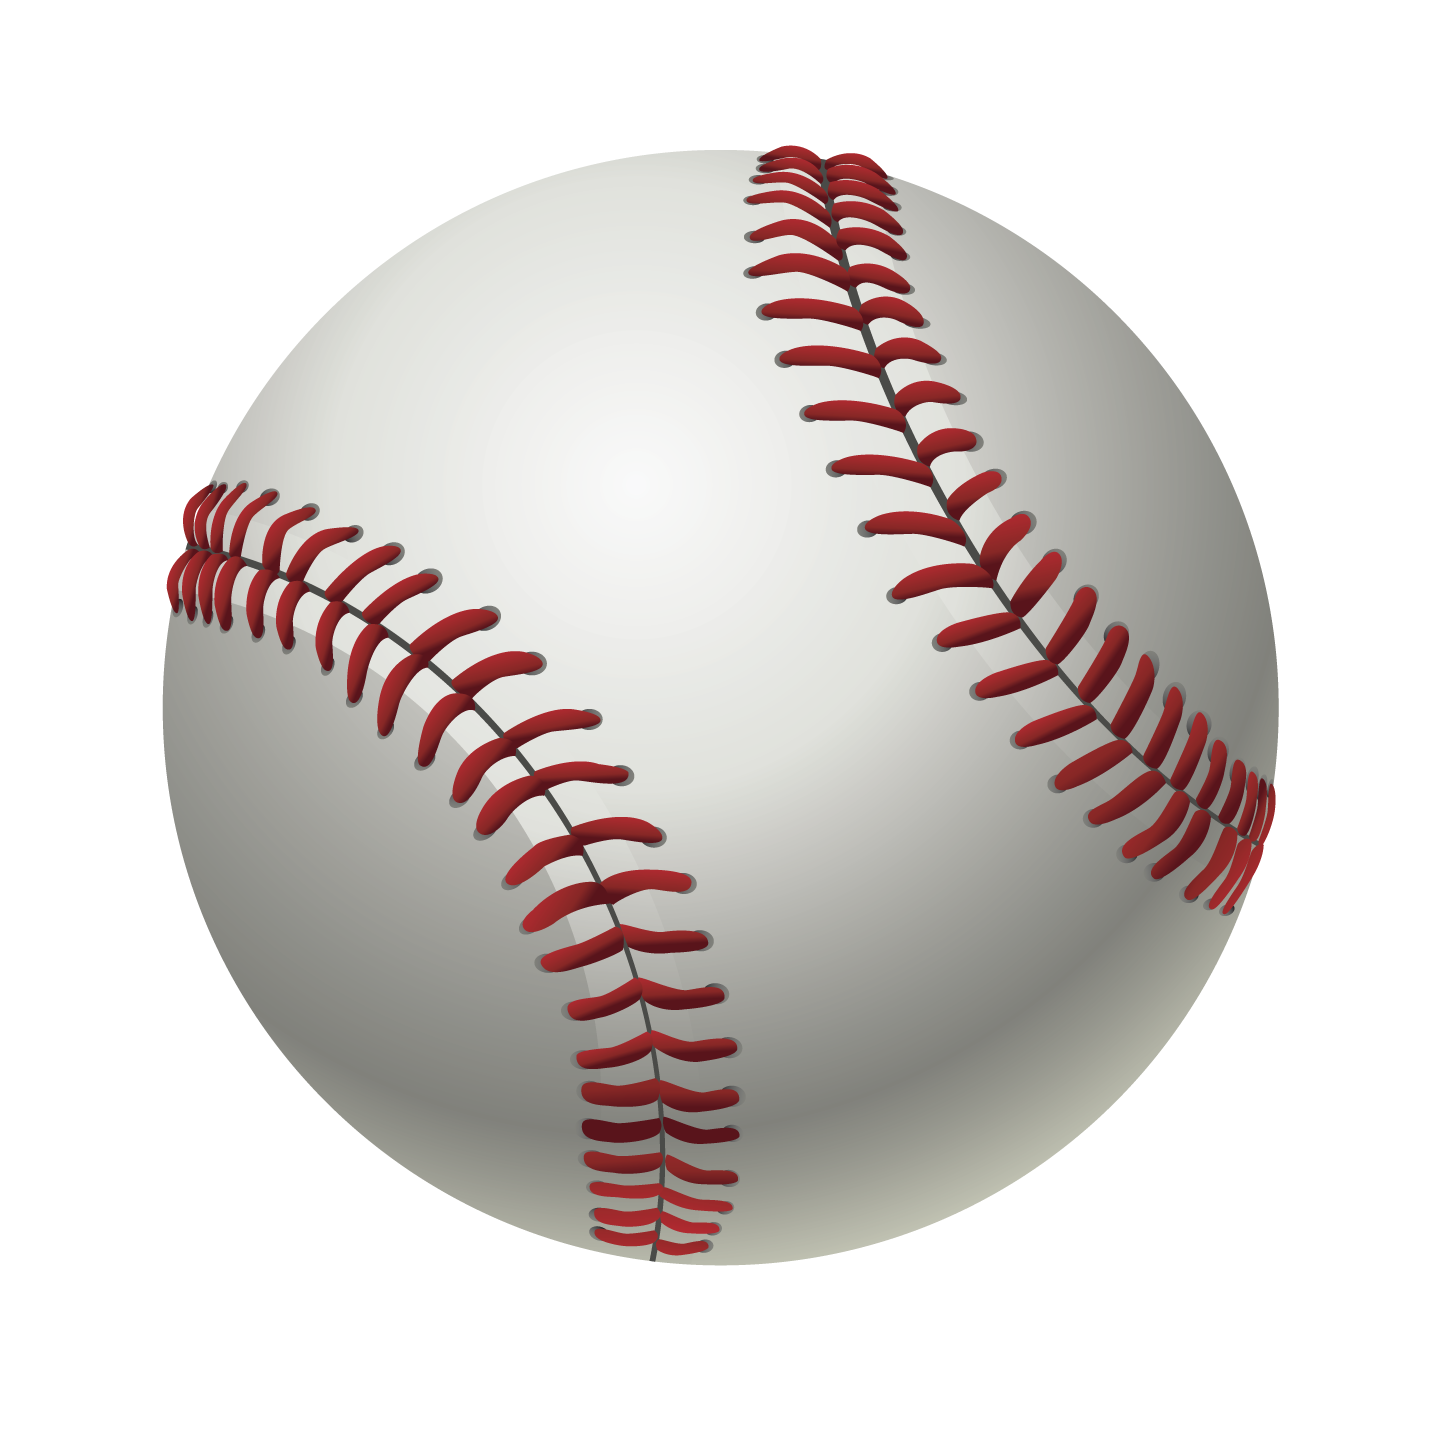 Baseball icon clipart transparent library Free Download Of Baseball Icon Clipart #35335 - Free Icons and PNG ... transparent library